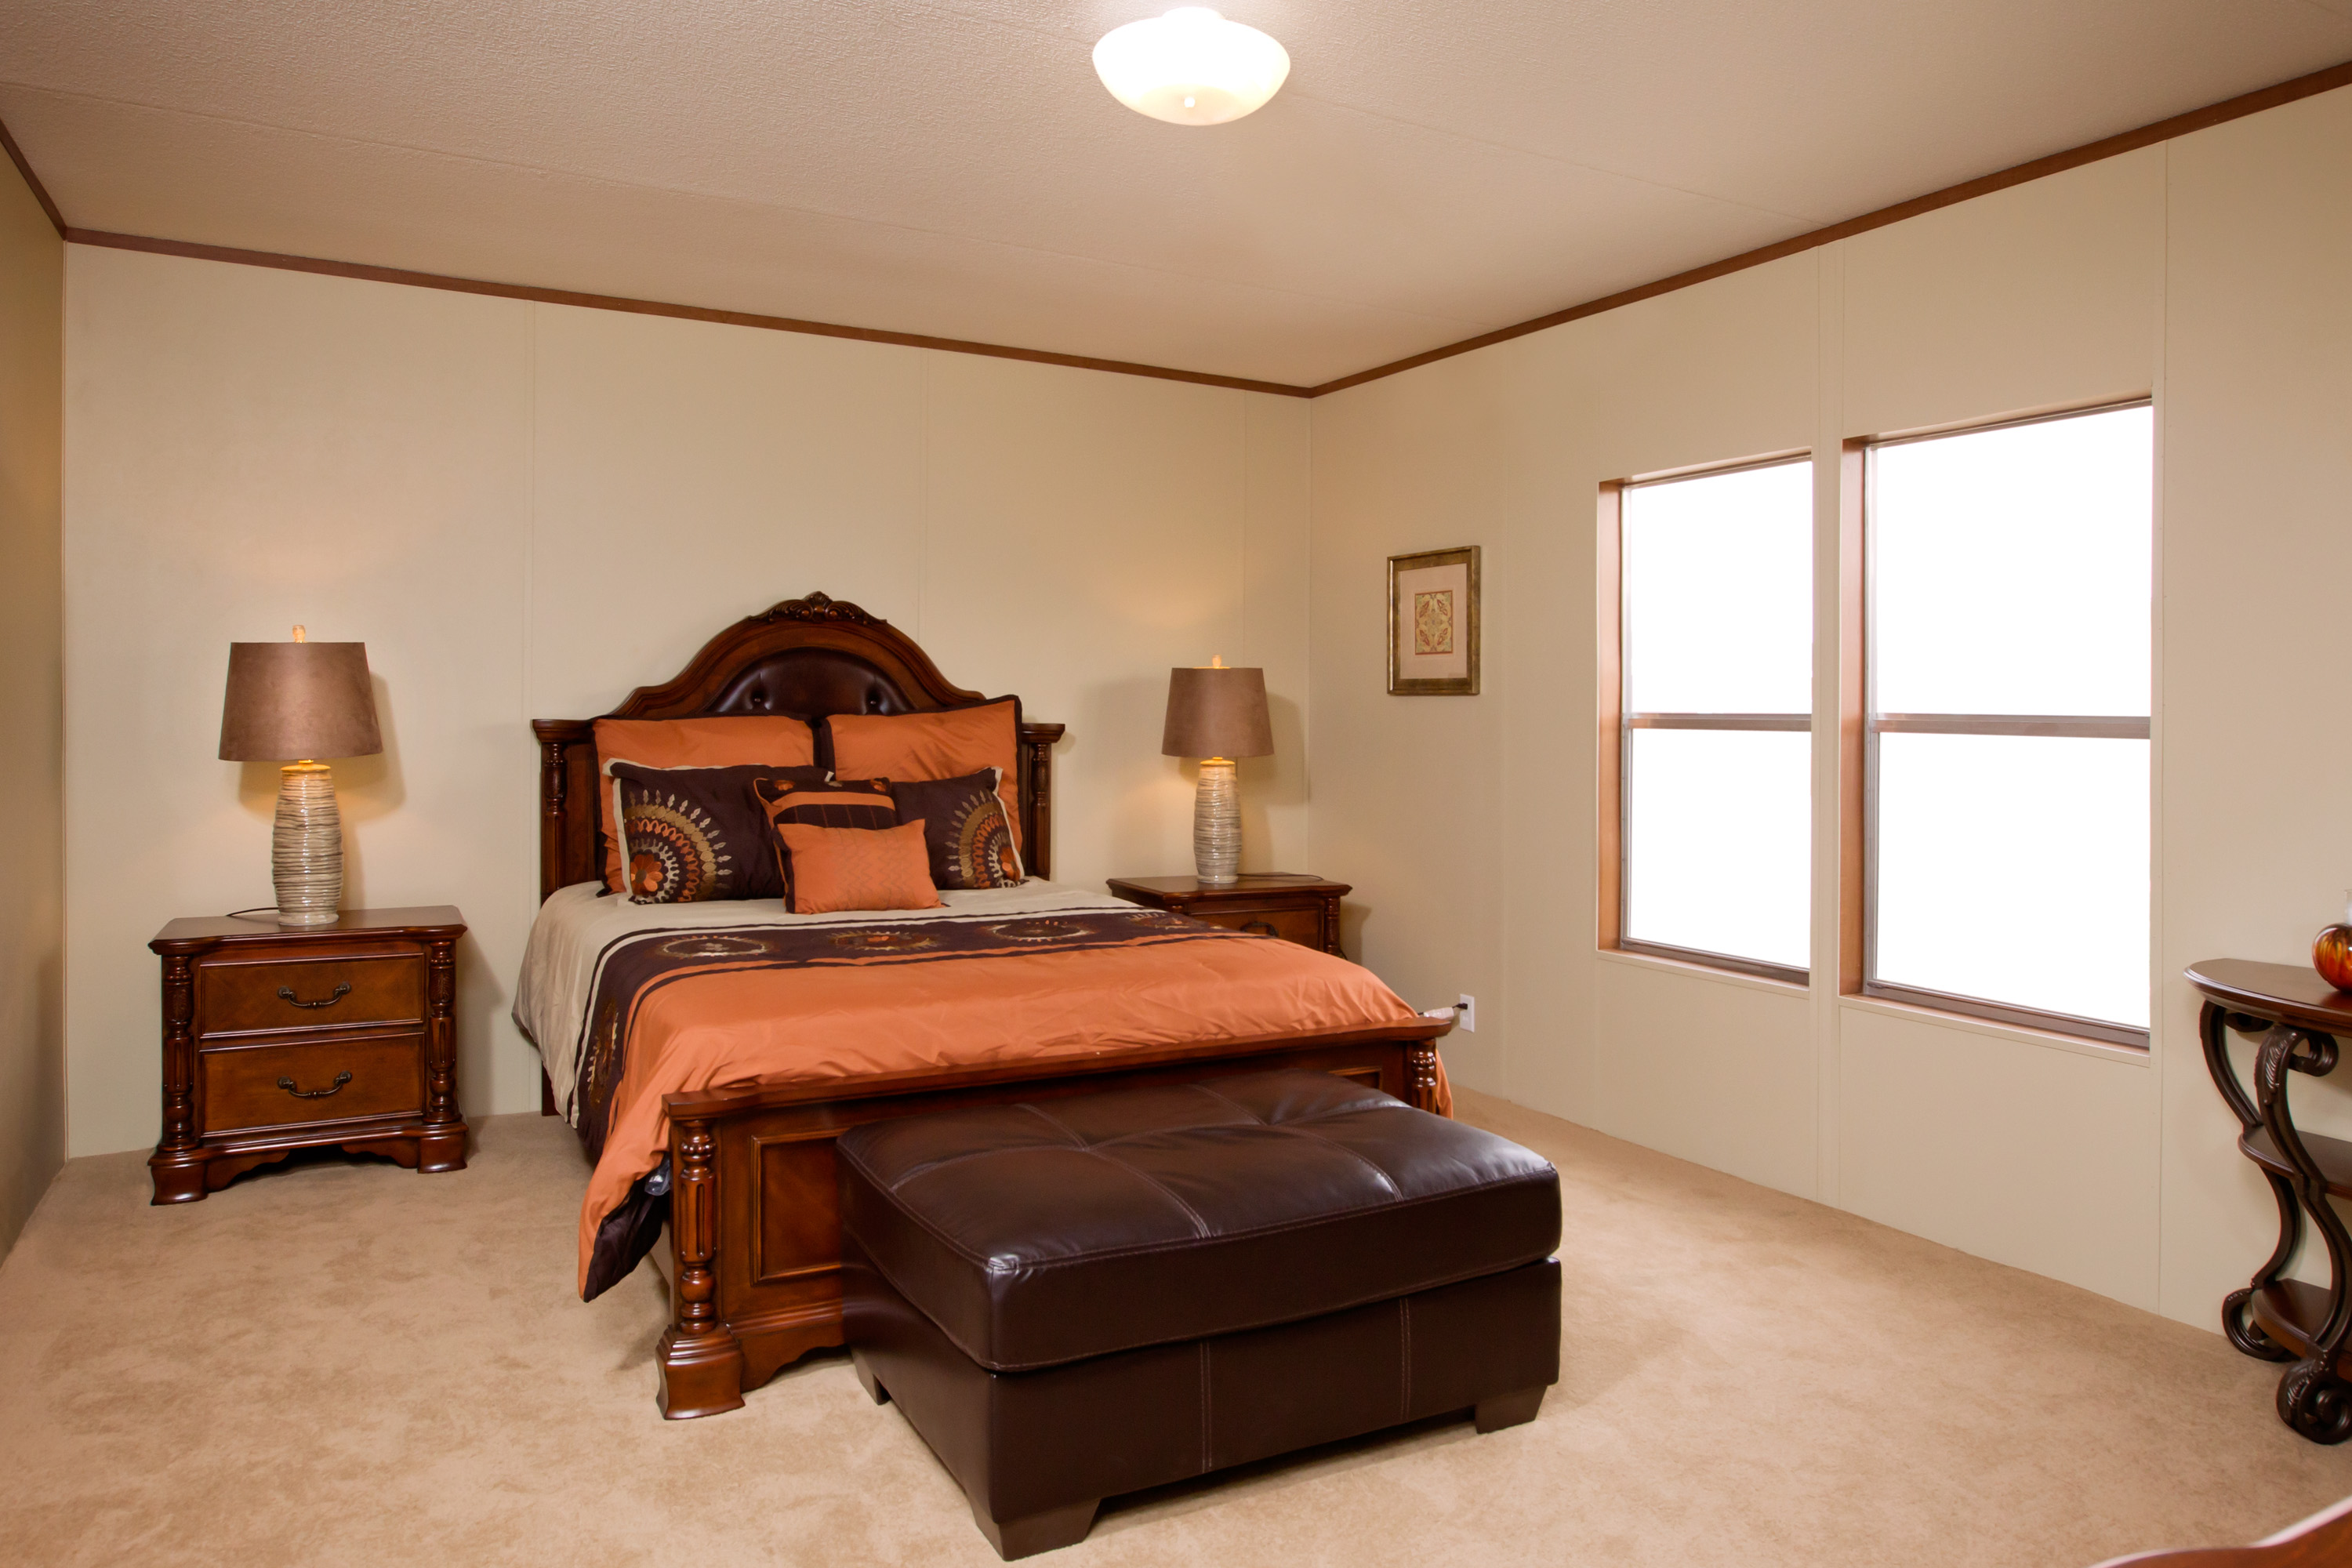 The-Beretta-Sheridan-Home-Master-Bedroom-Titan-Factory-Direct